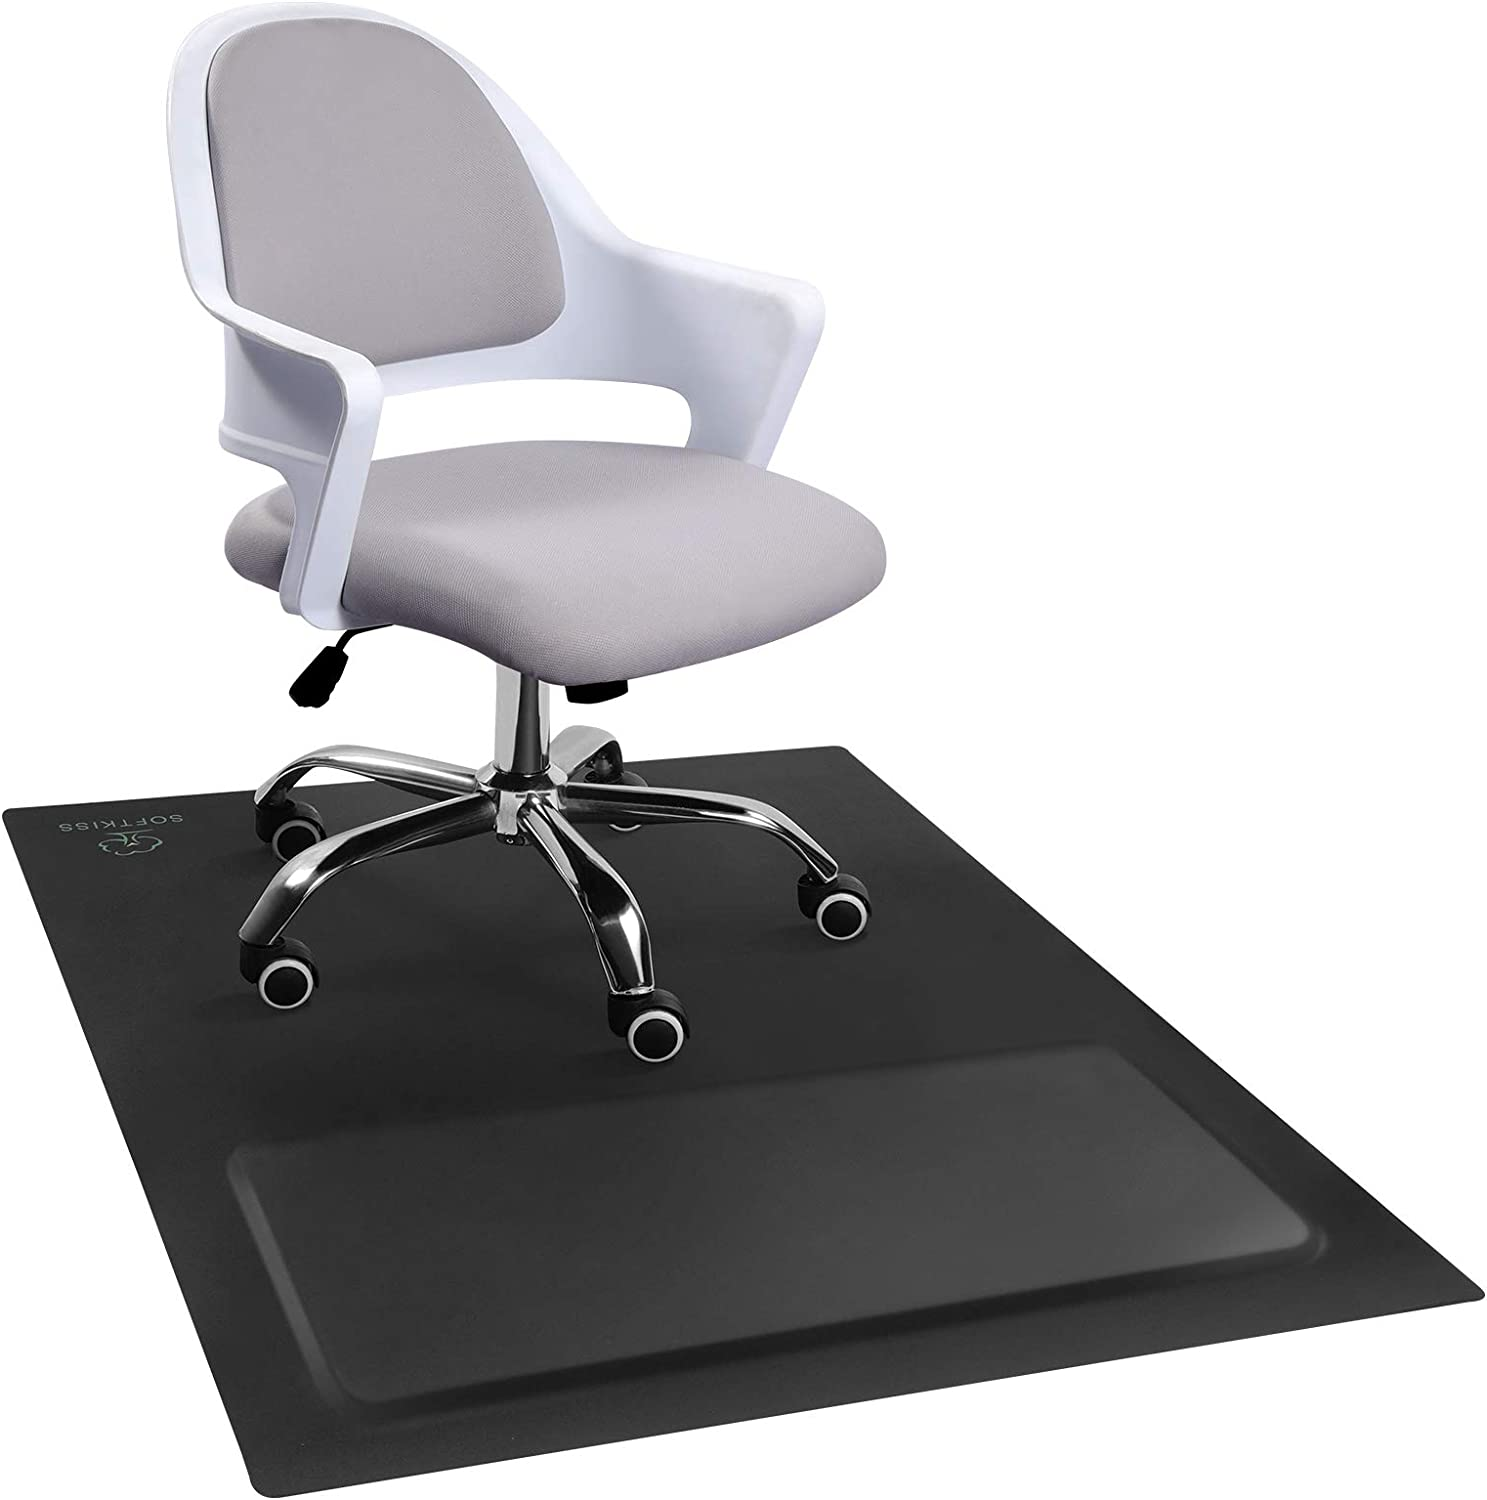 """Office Chair Anti-Fatigue Mat with Cushioned Foam Foot Support, 50"""" x 36"""" Floor Coverage, Scratch Resistant and Waterproof Anti-Slip Surface, Soft Ergonomic Cushion"""